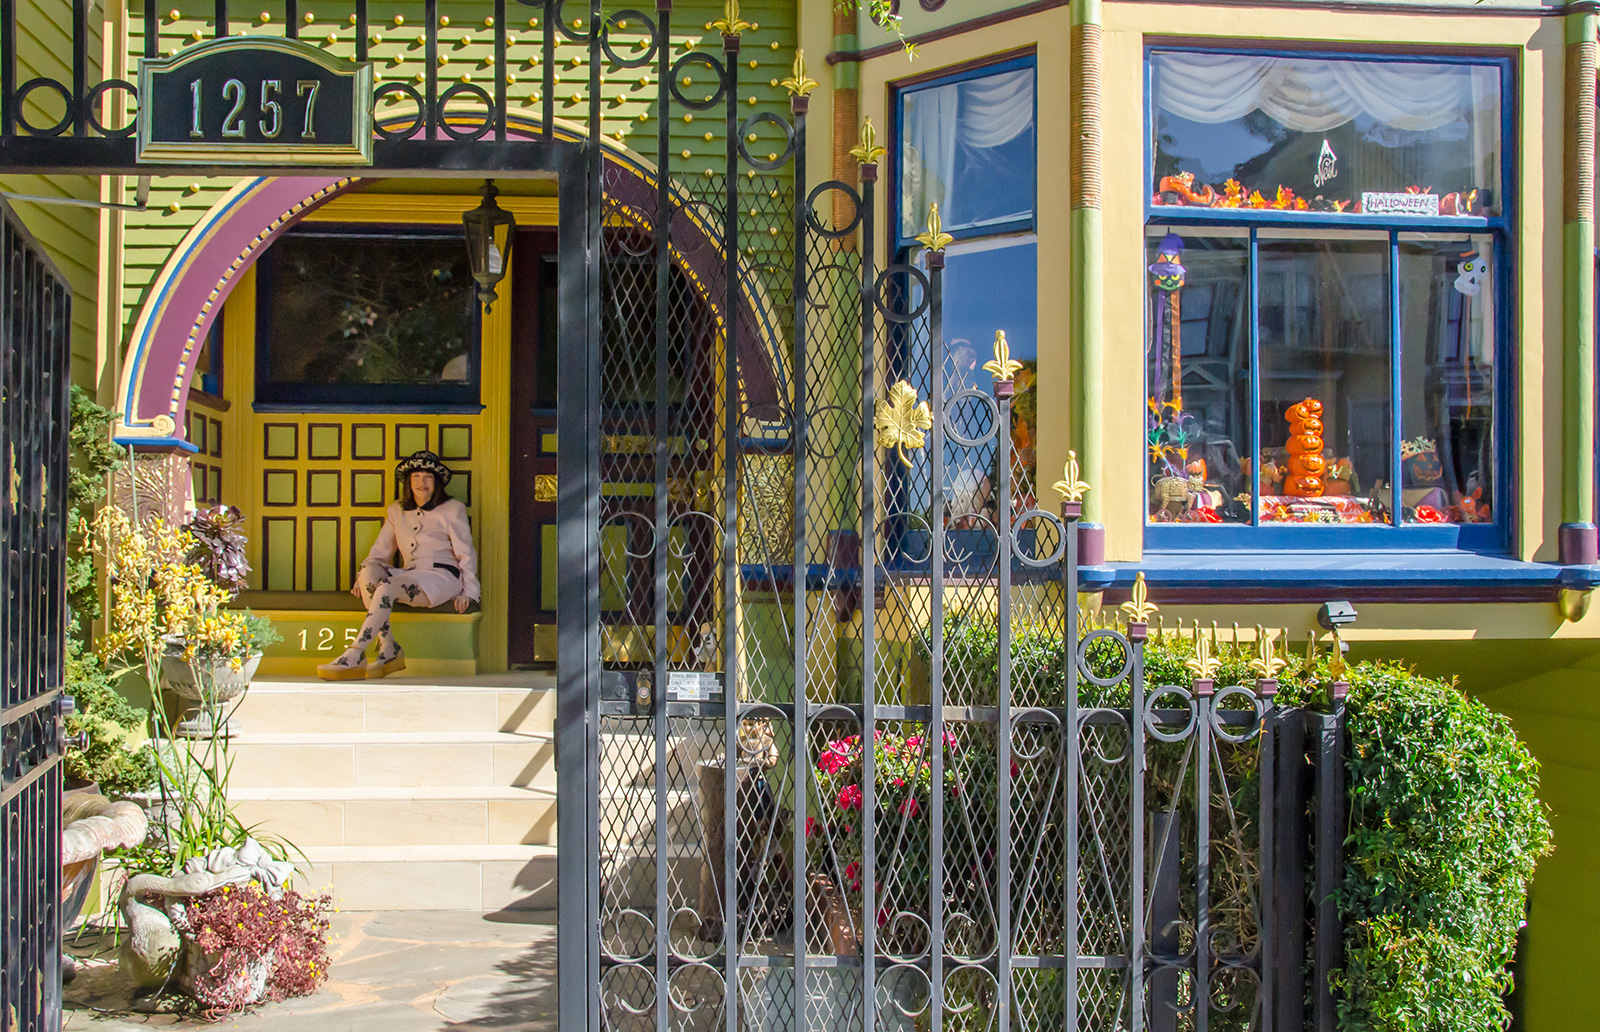 Odd Buildings: Eclectic Style at Bed and Breakfast